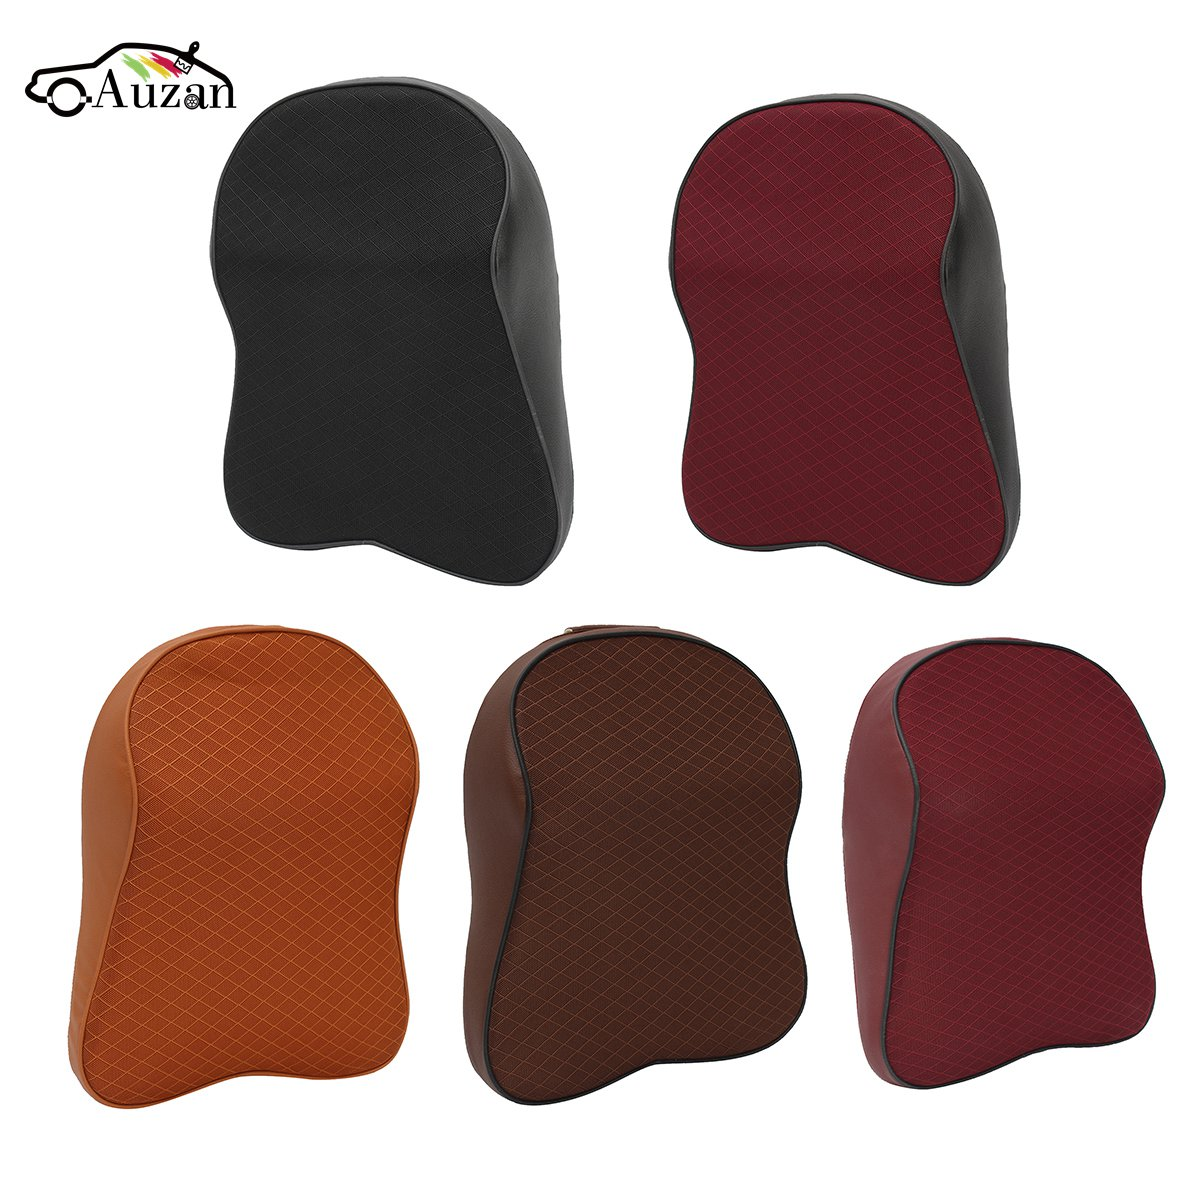 Car Seat Headrest Pad Memory Foam Neck Pillow Travel Head Neck Rest Support Cushion for VW /BMW/AUDI/FORD Universal